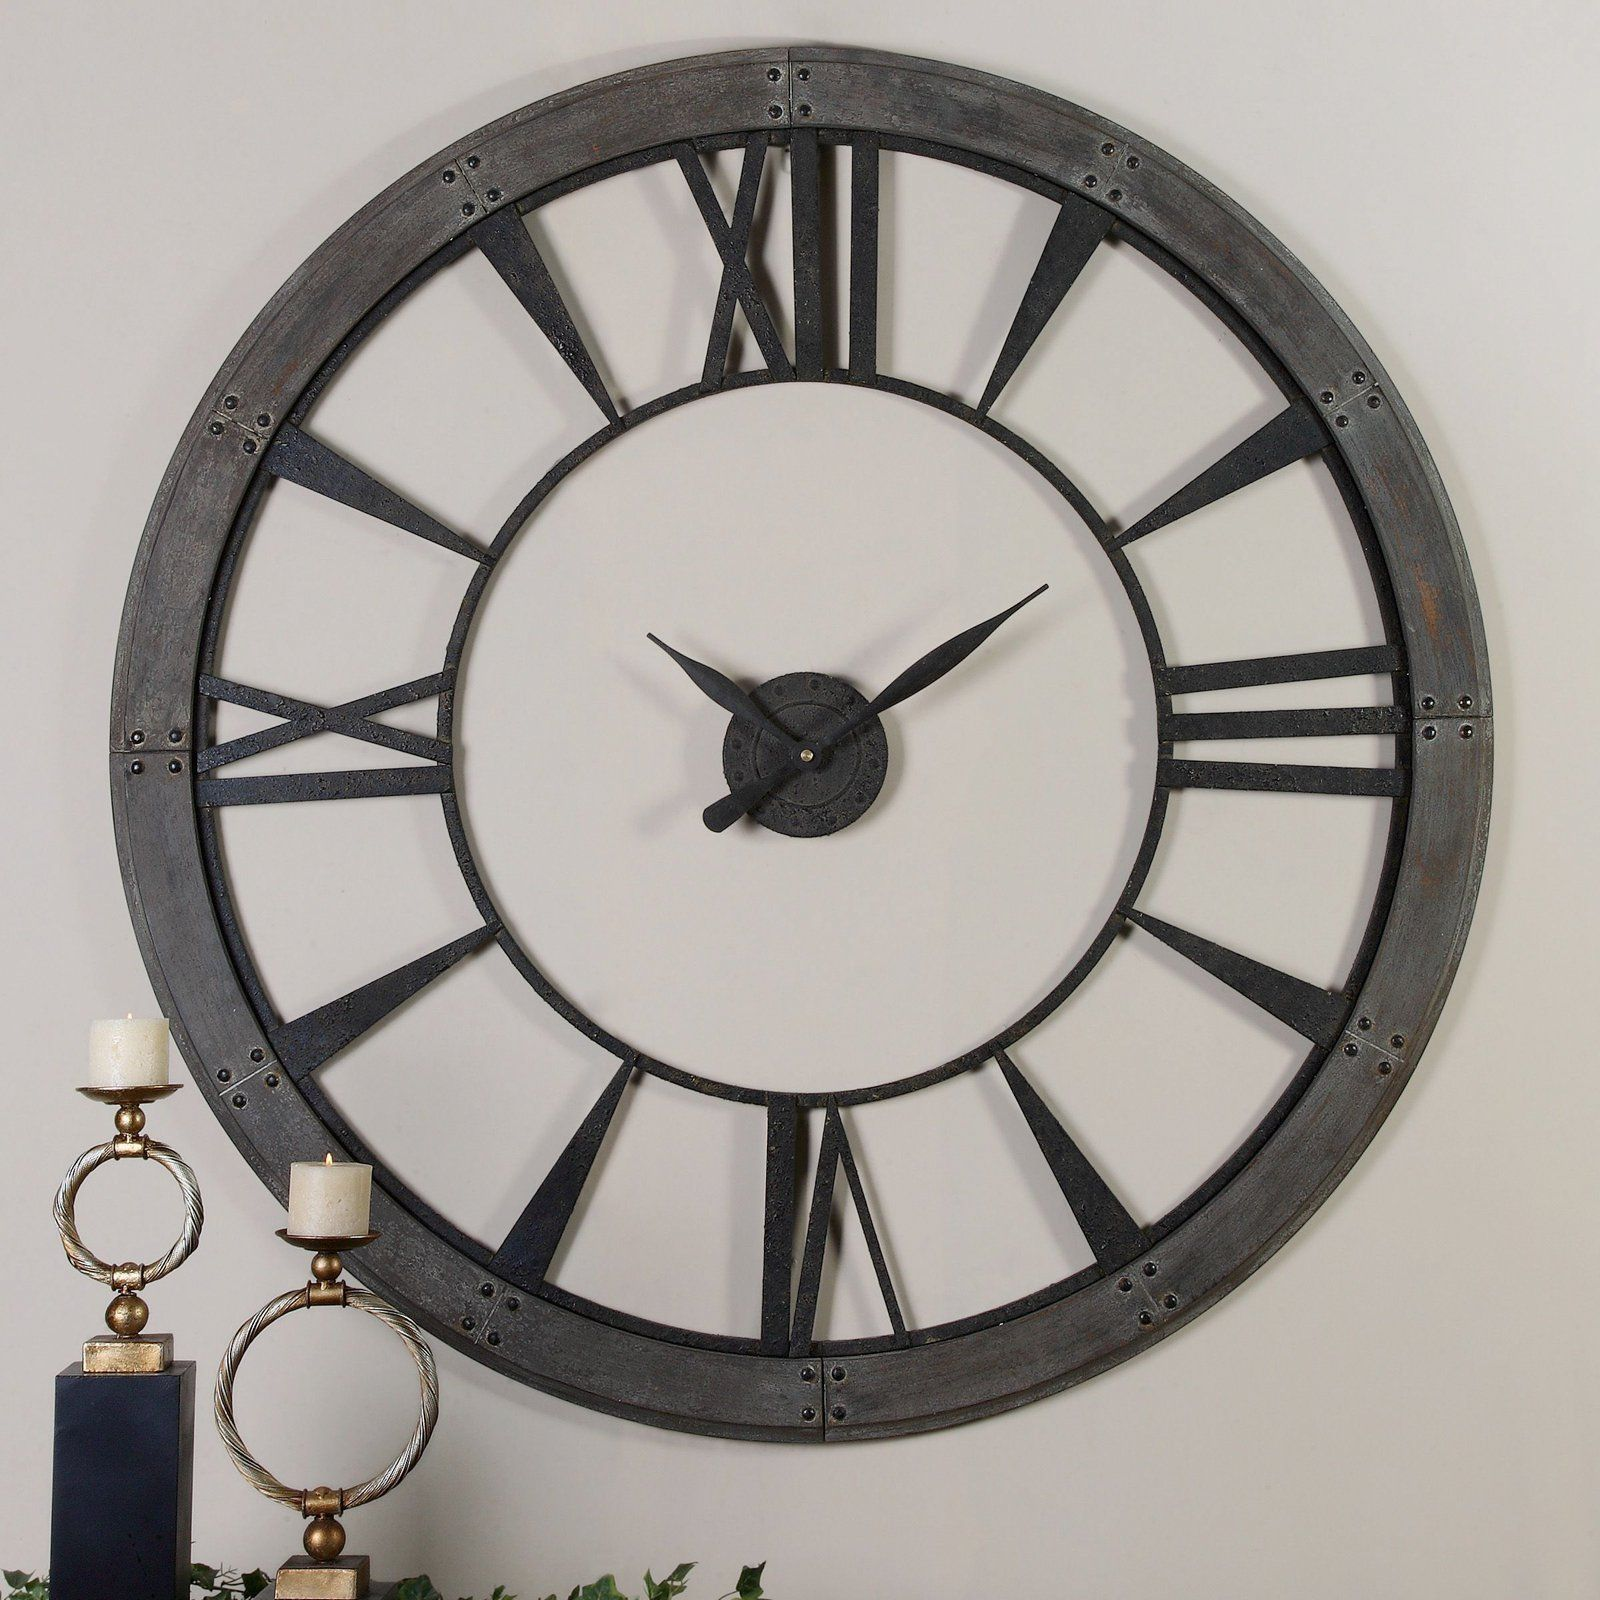 Black Wall Clocks have to have it. uttermost ronan wall clock - $272.8 @hayneedle 40